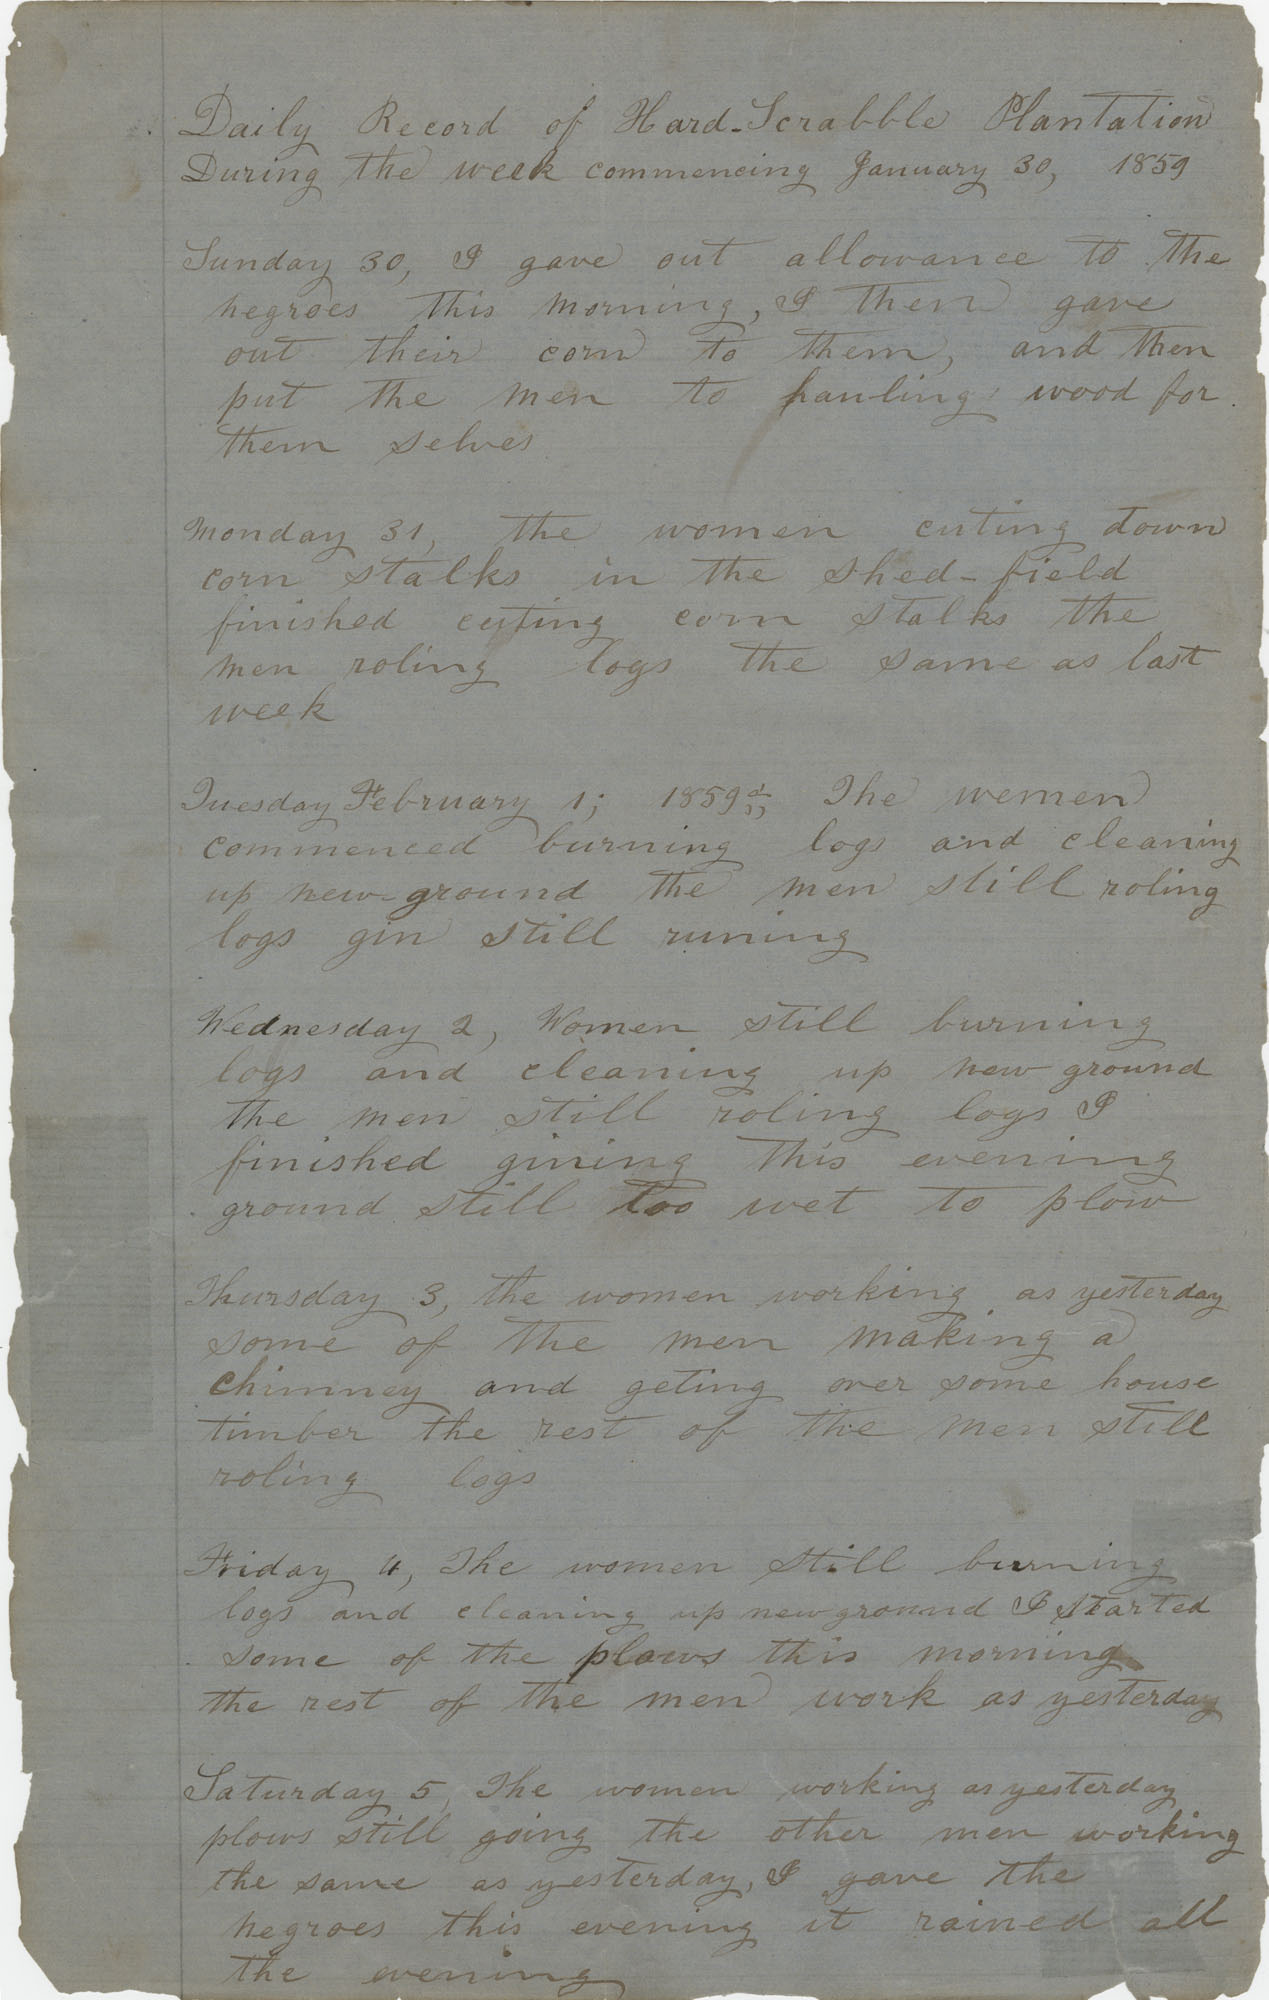 Daily Record of the Hardscrabble Plantation, January 30, 1859